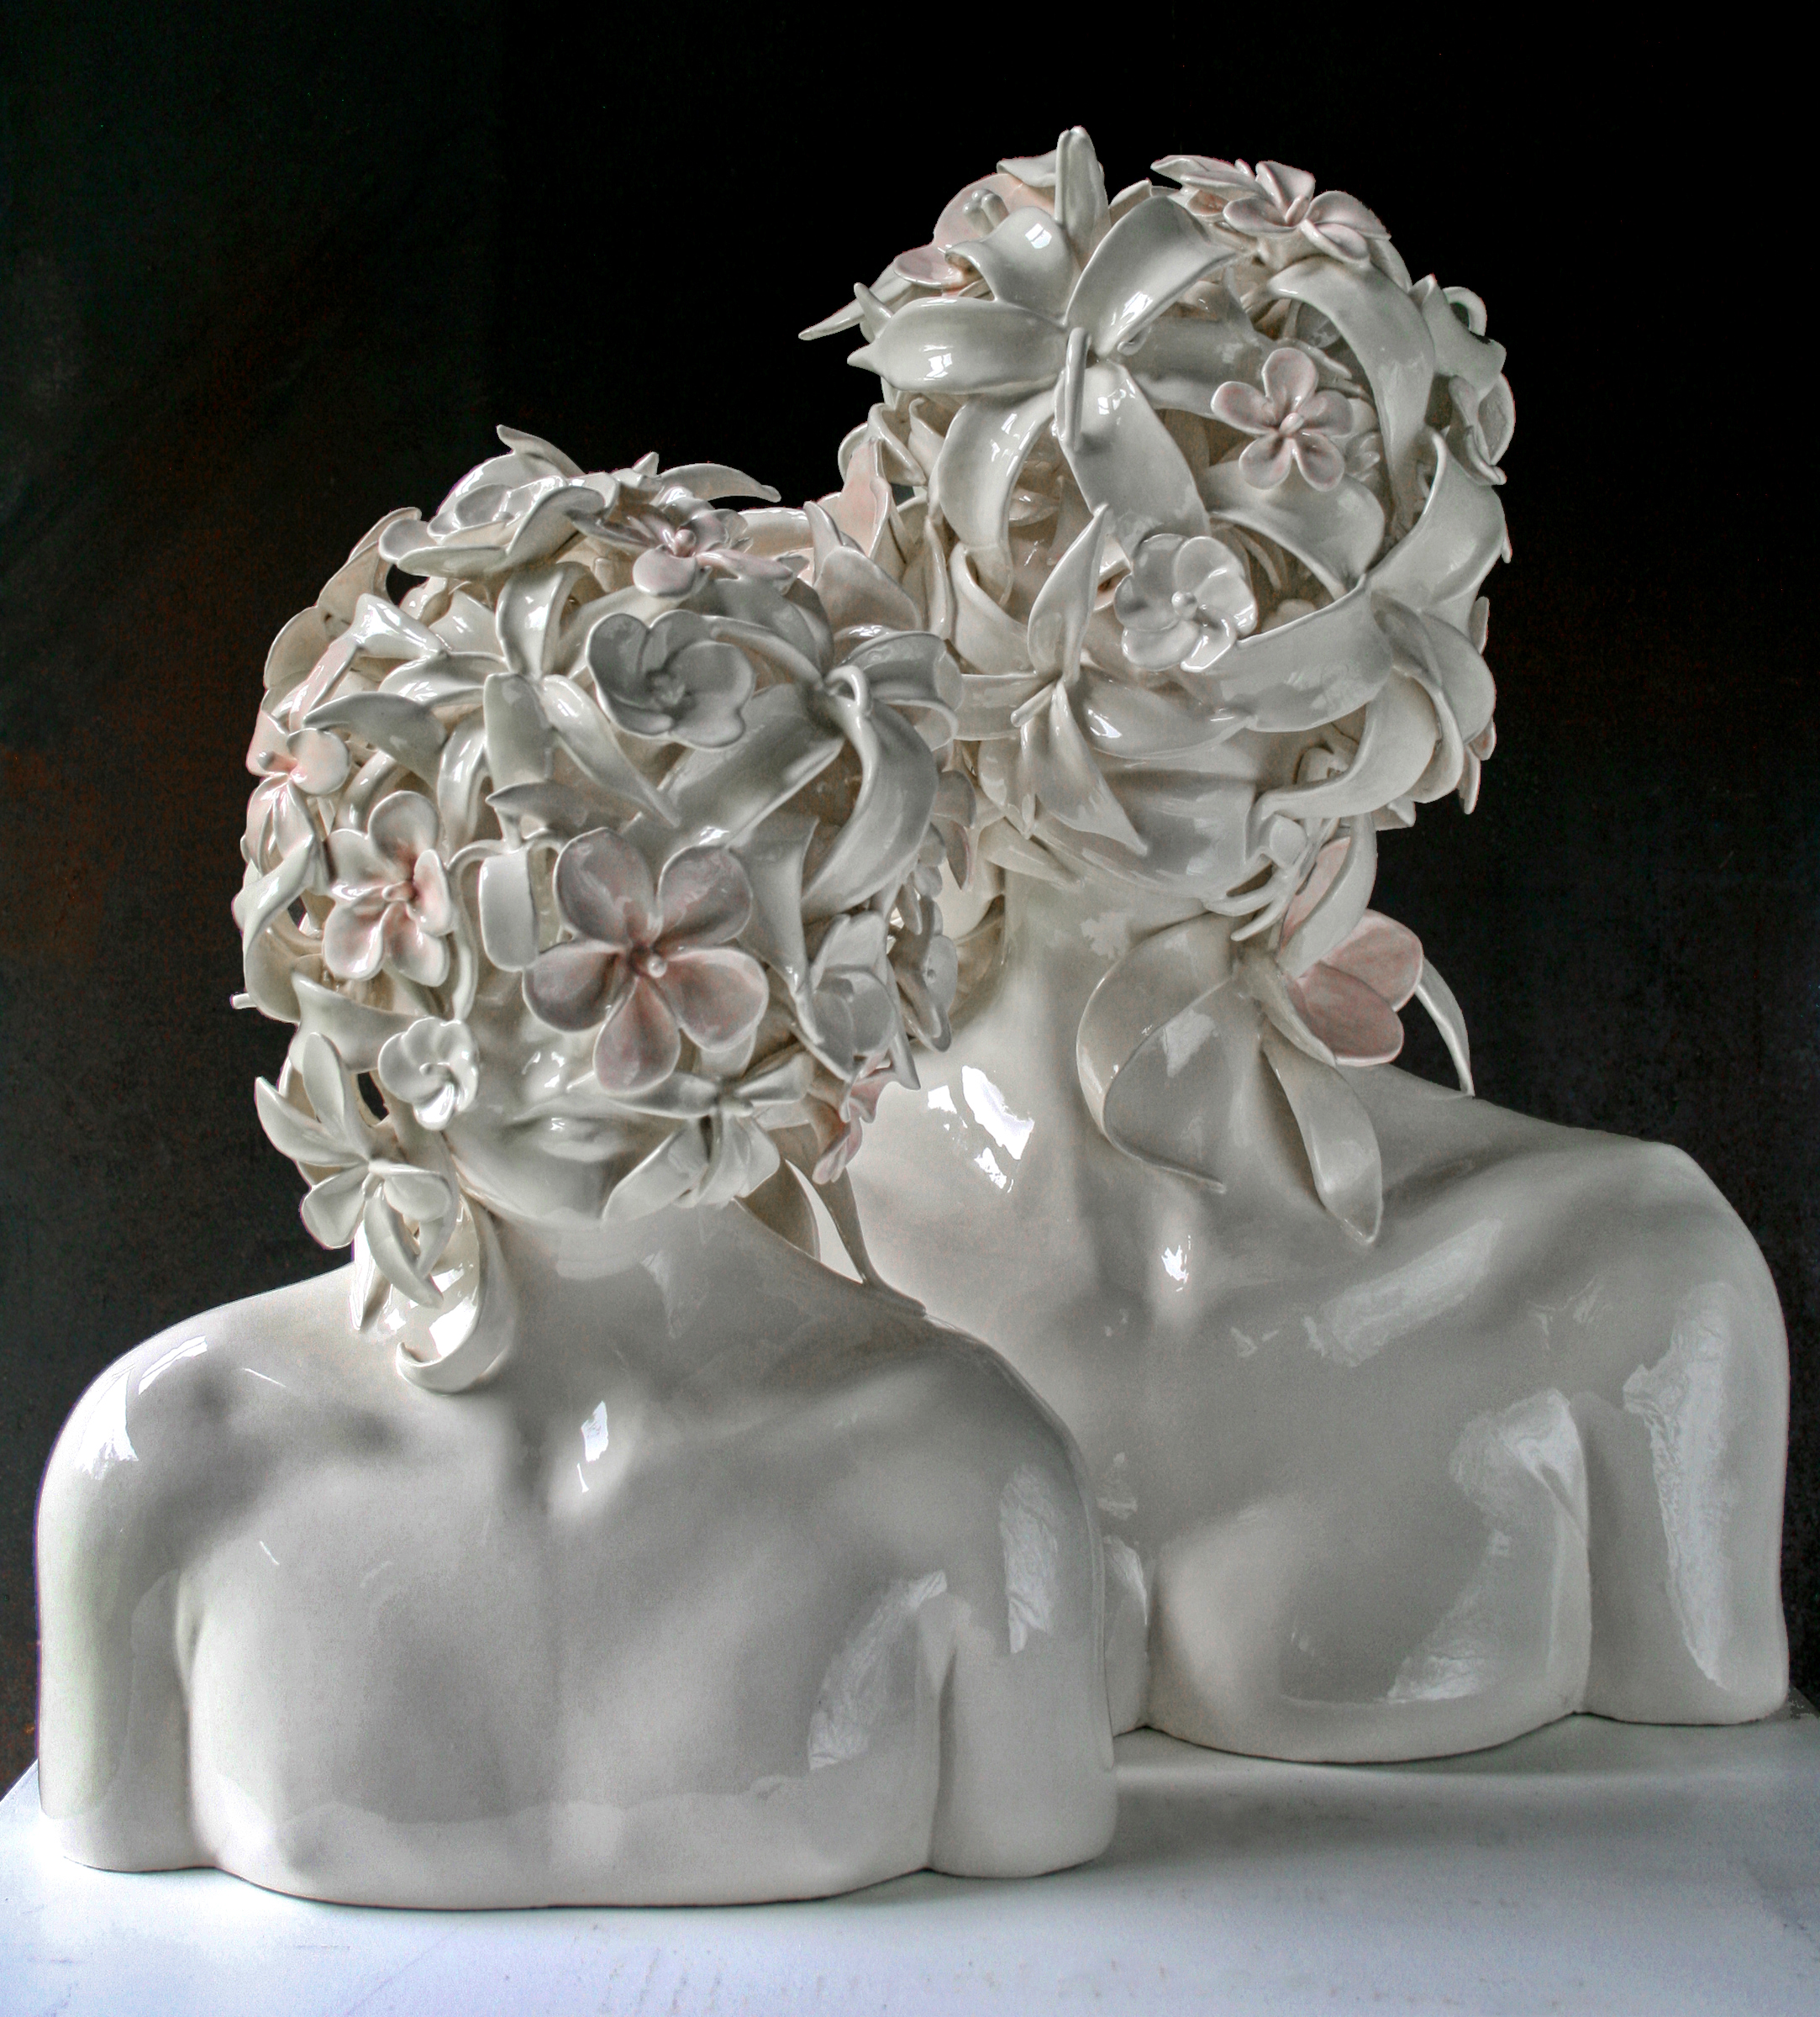 MOTHER AND CHILD  (Series) . 2010, Ceramic, 20 x 24 x 14""